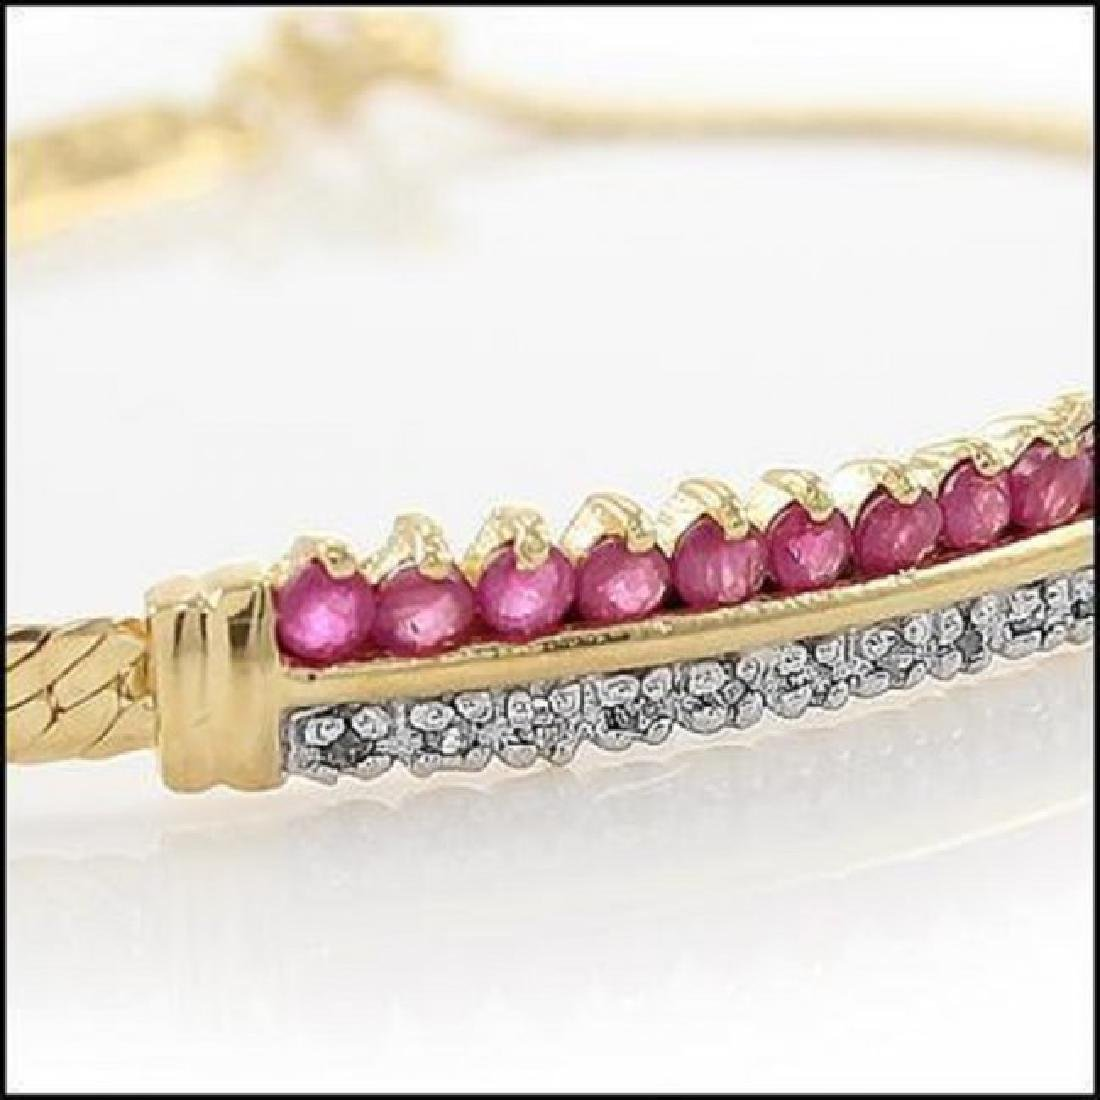 3.39 CT Ruby & Diamond Designer Bracelet $960 - 2